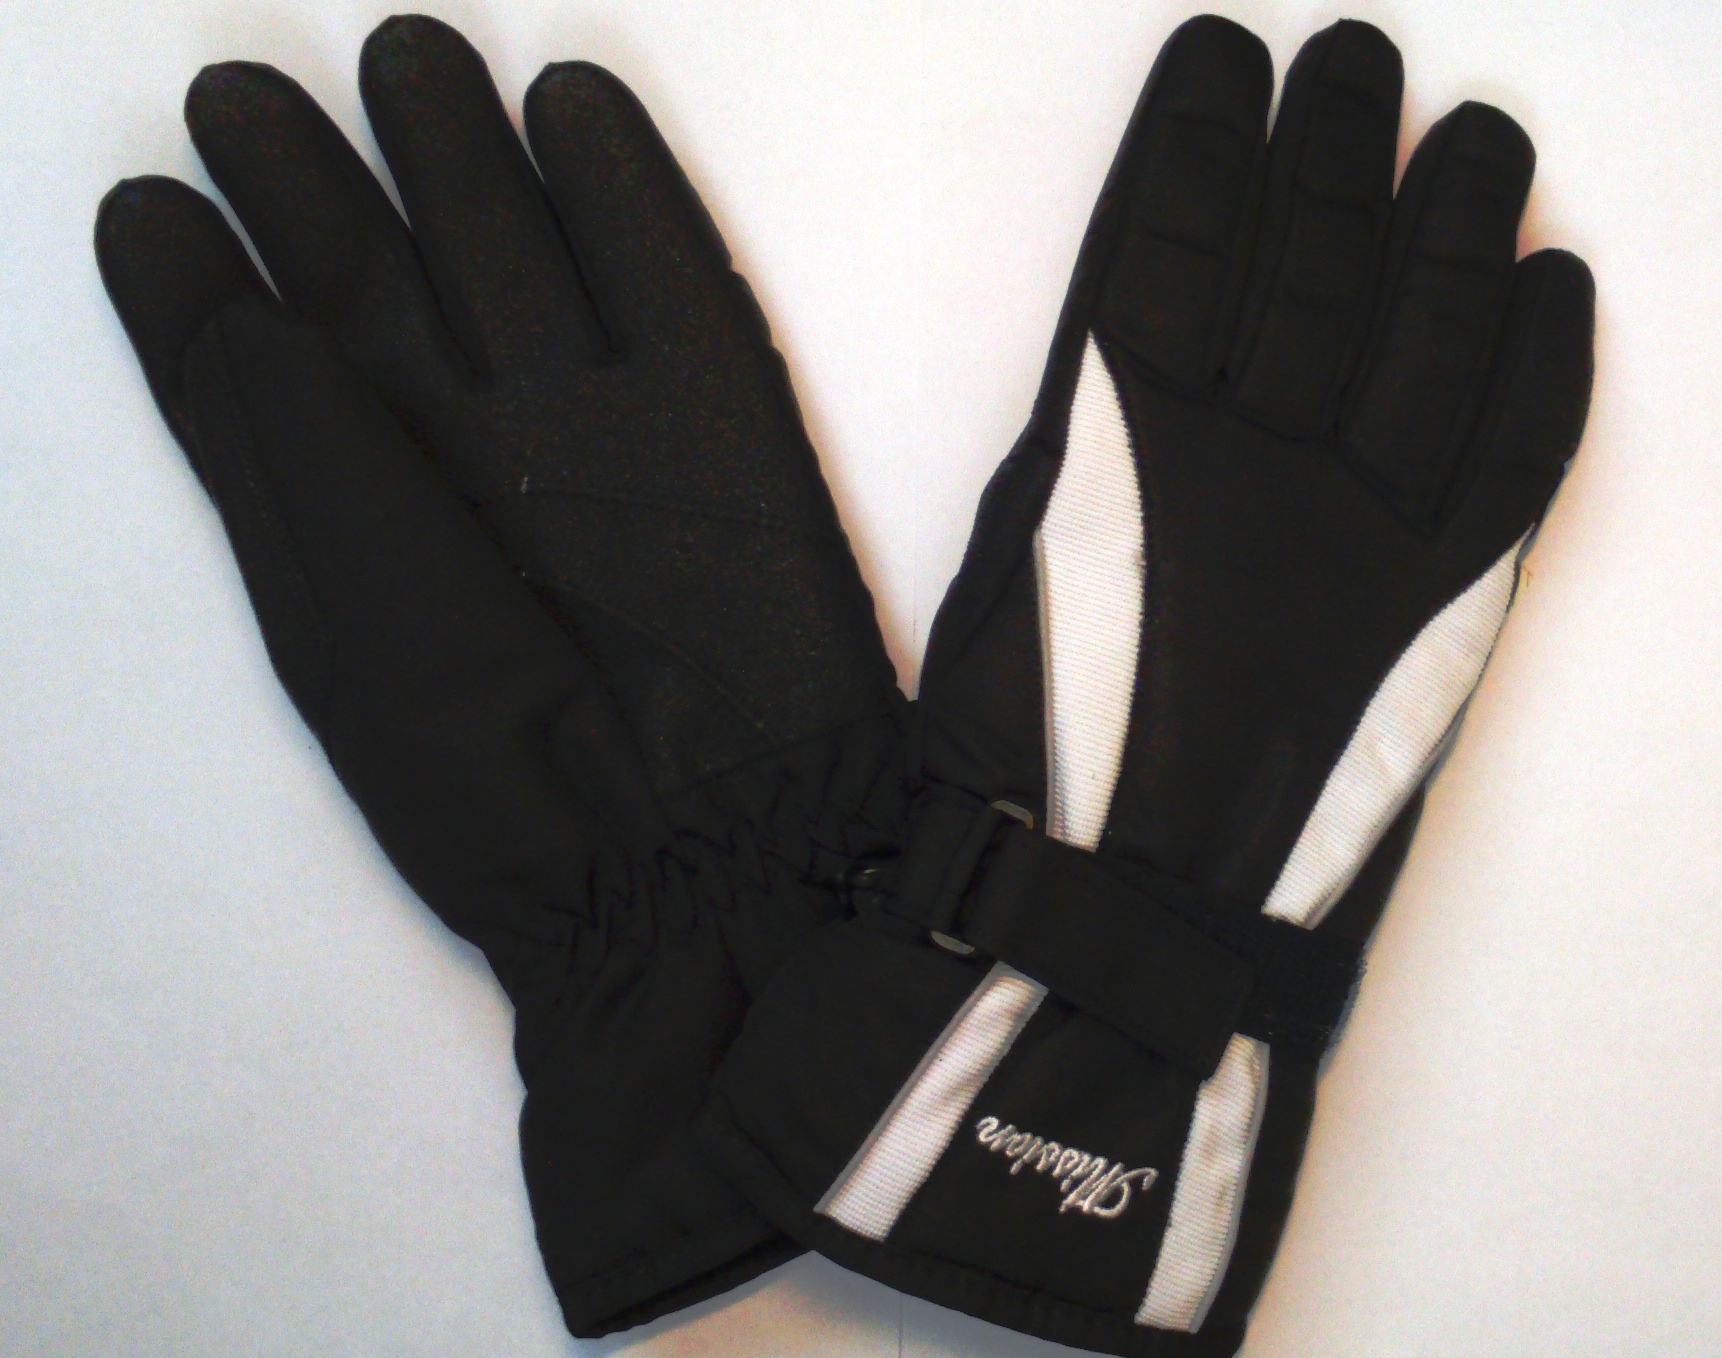 V3TEC NEORA 2 glove, black/white